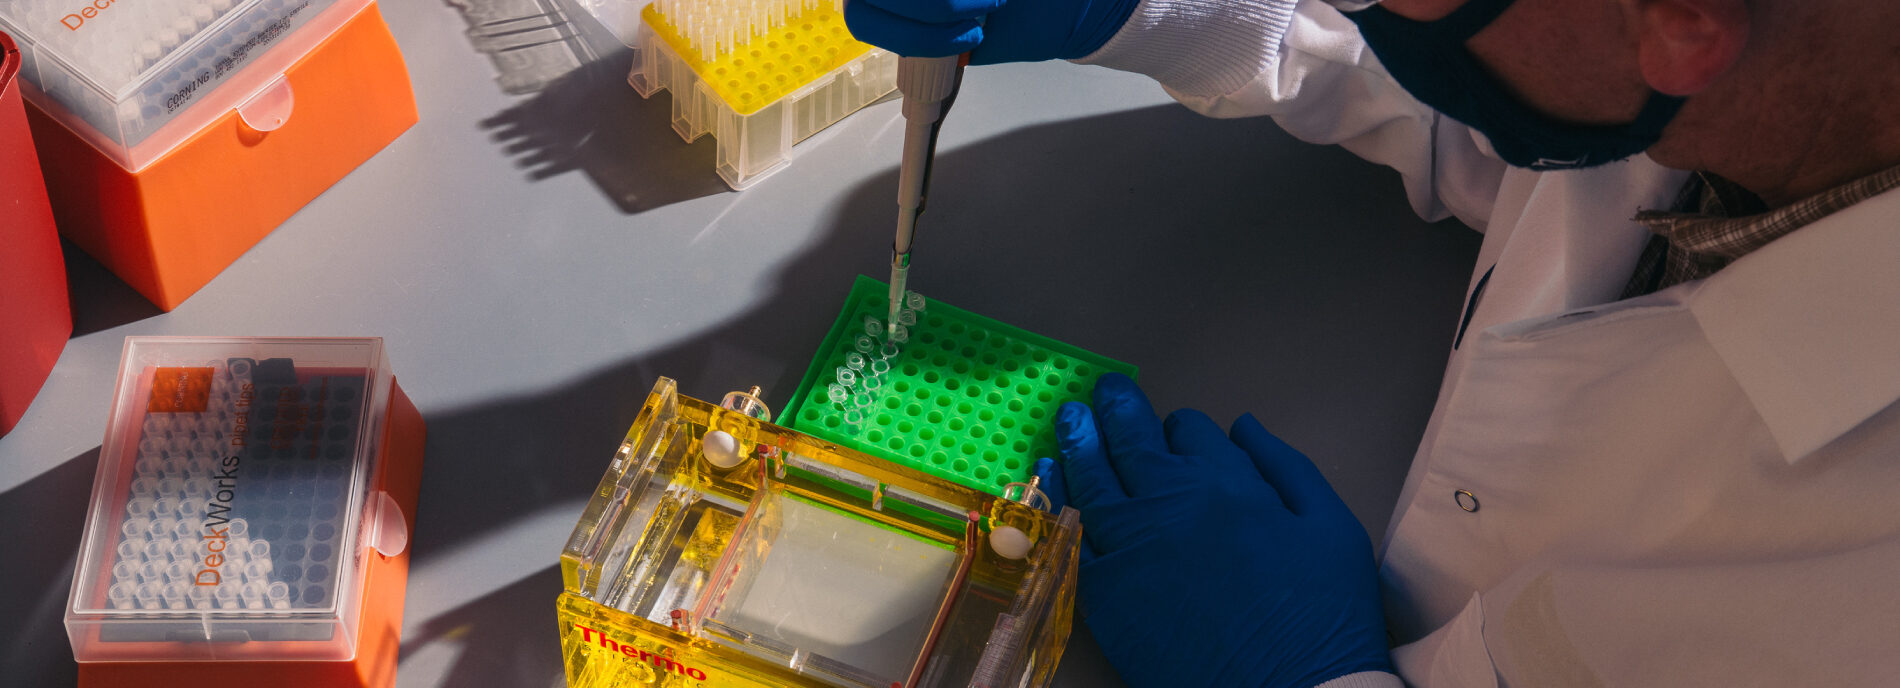 Ralf Schmid, the research director in Neurodevelopmental diseases at the Gene Therapy Program Orphan Disease Center, loads replicated mouse dna into wells in the gel before applying electric current to test the viability of the dna.